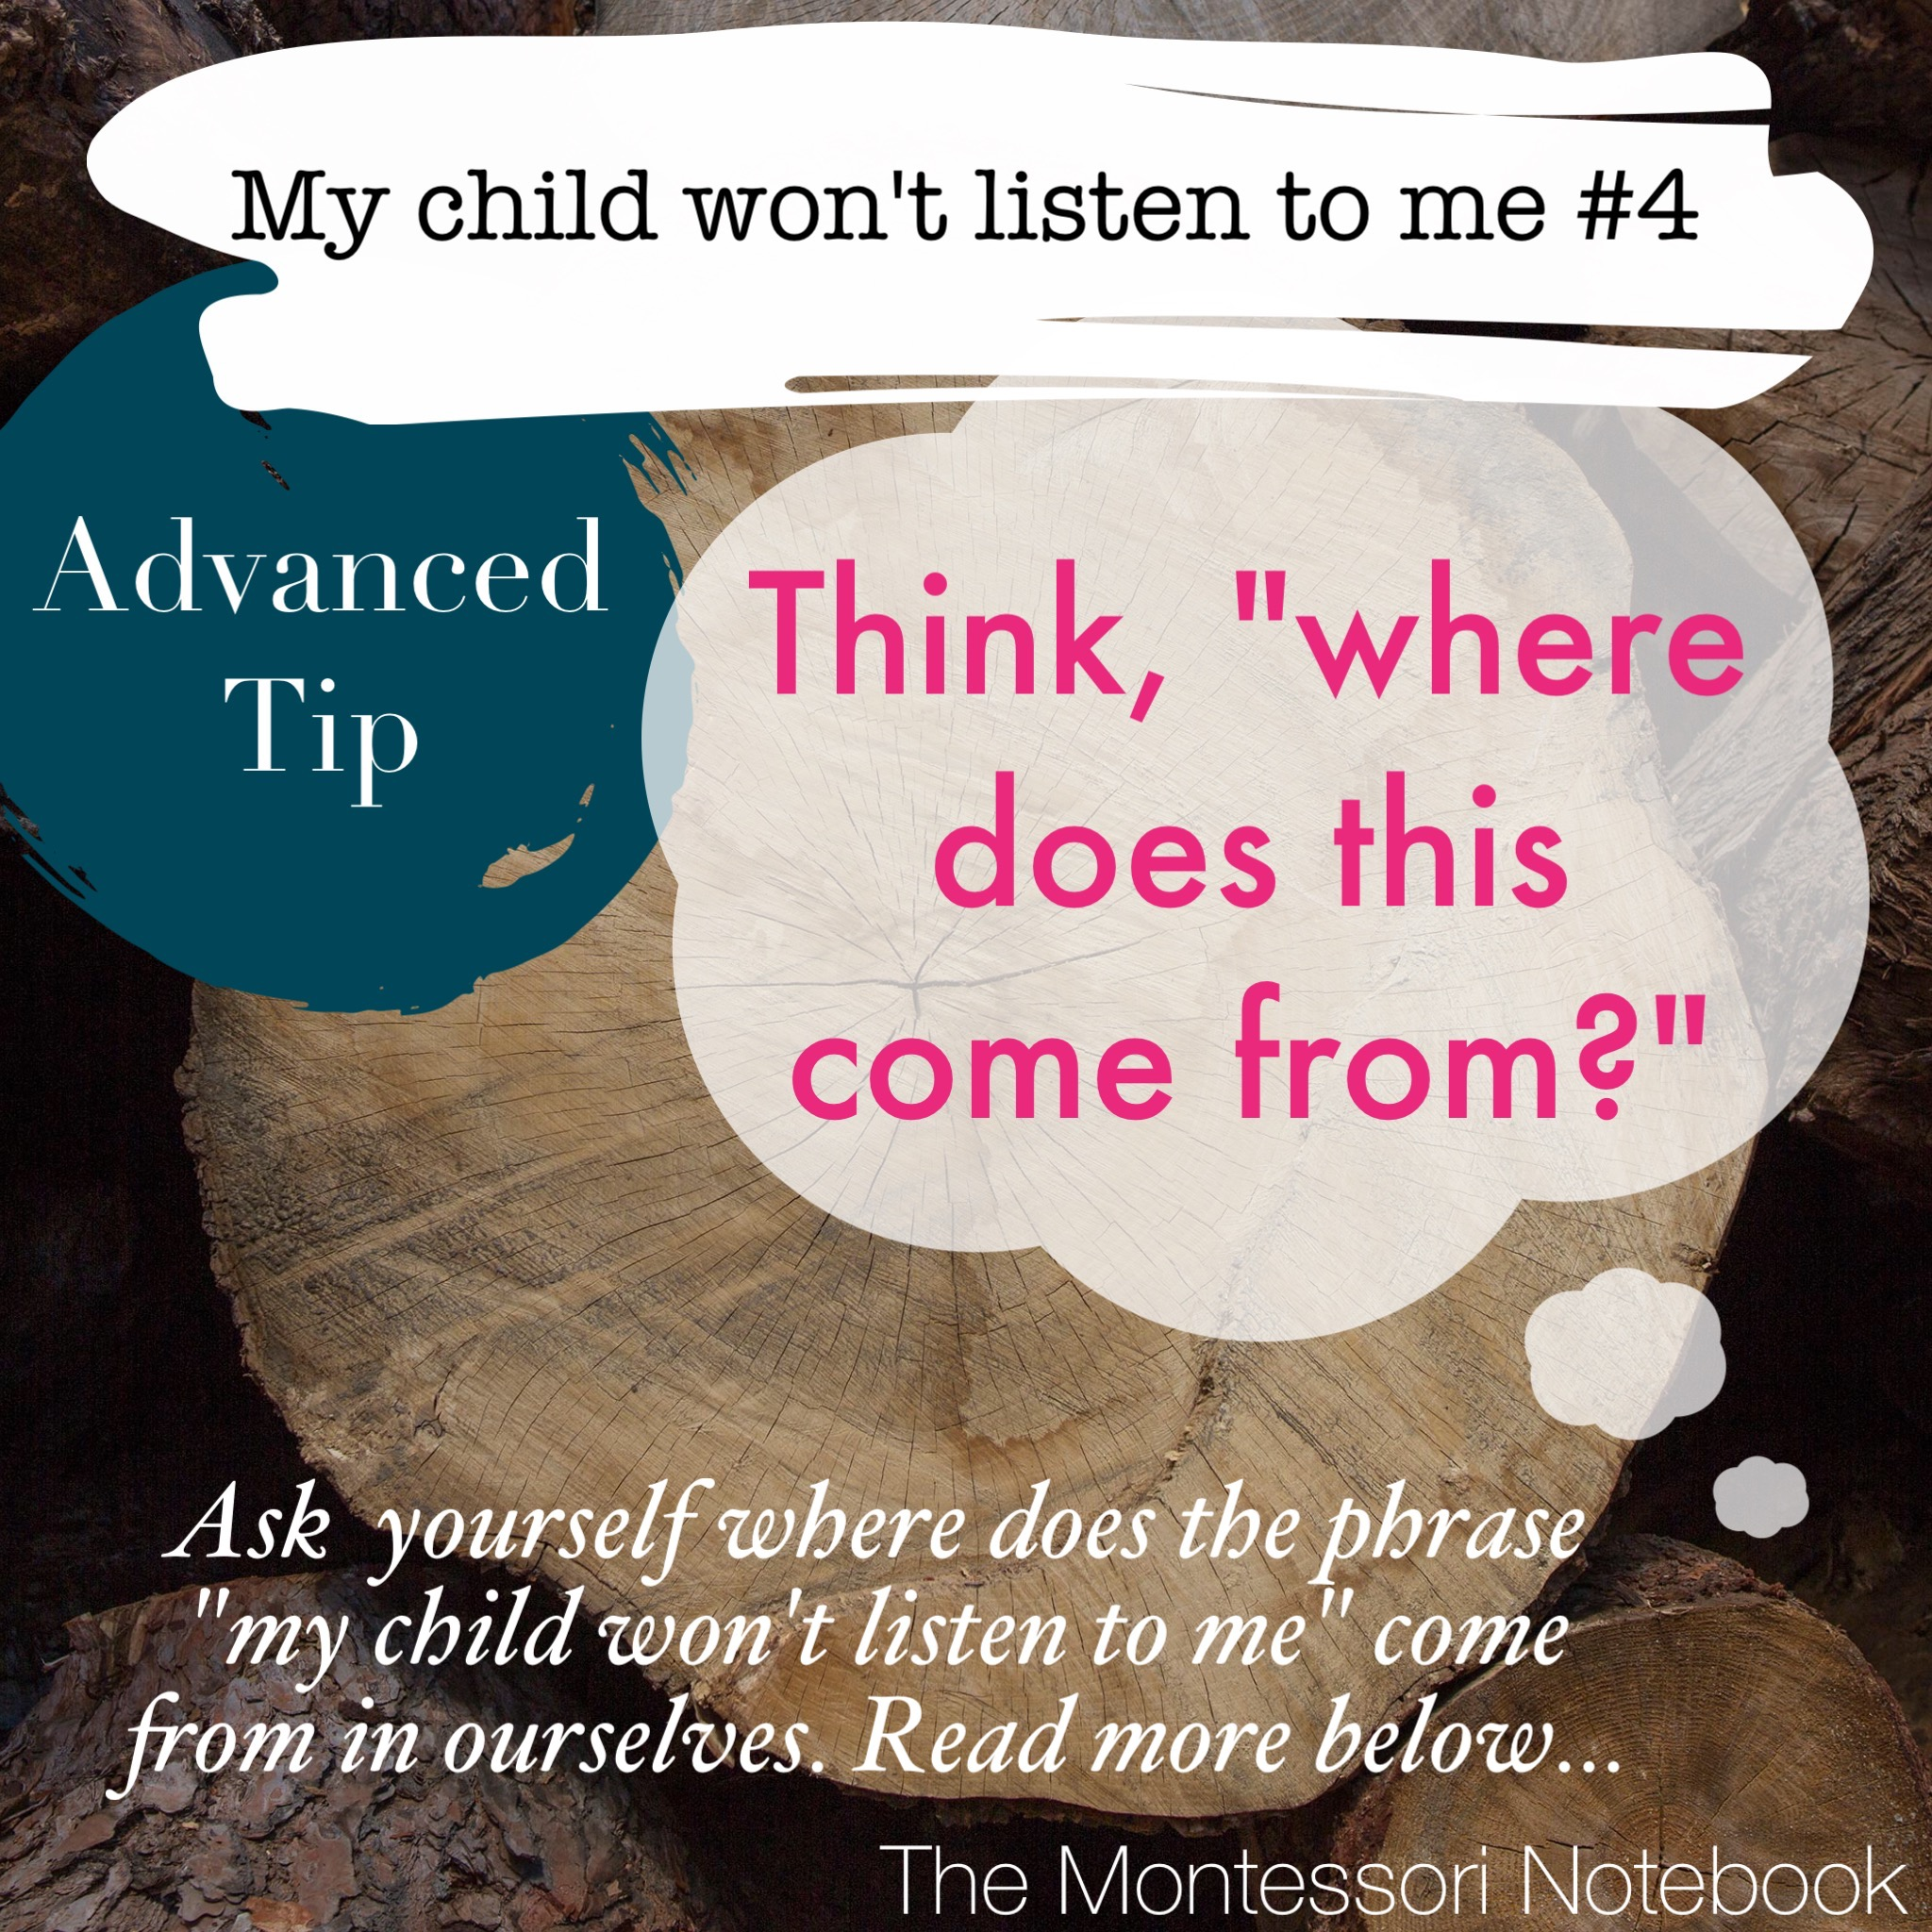 My child won't listen to me - 10 tips to turn things around - The